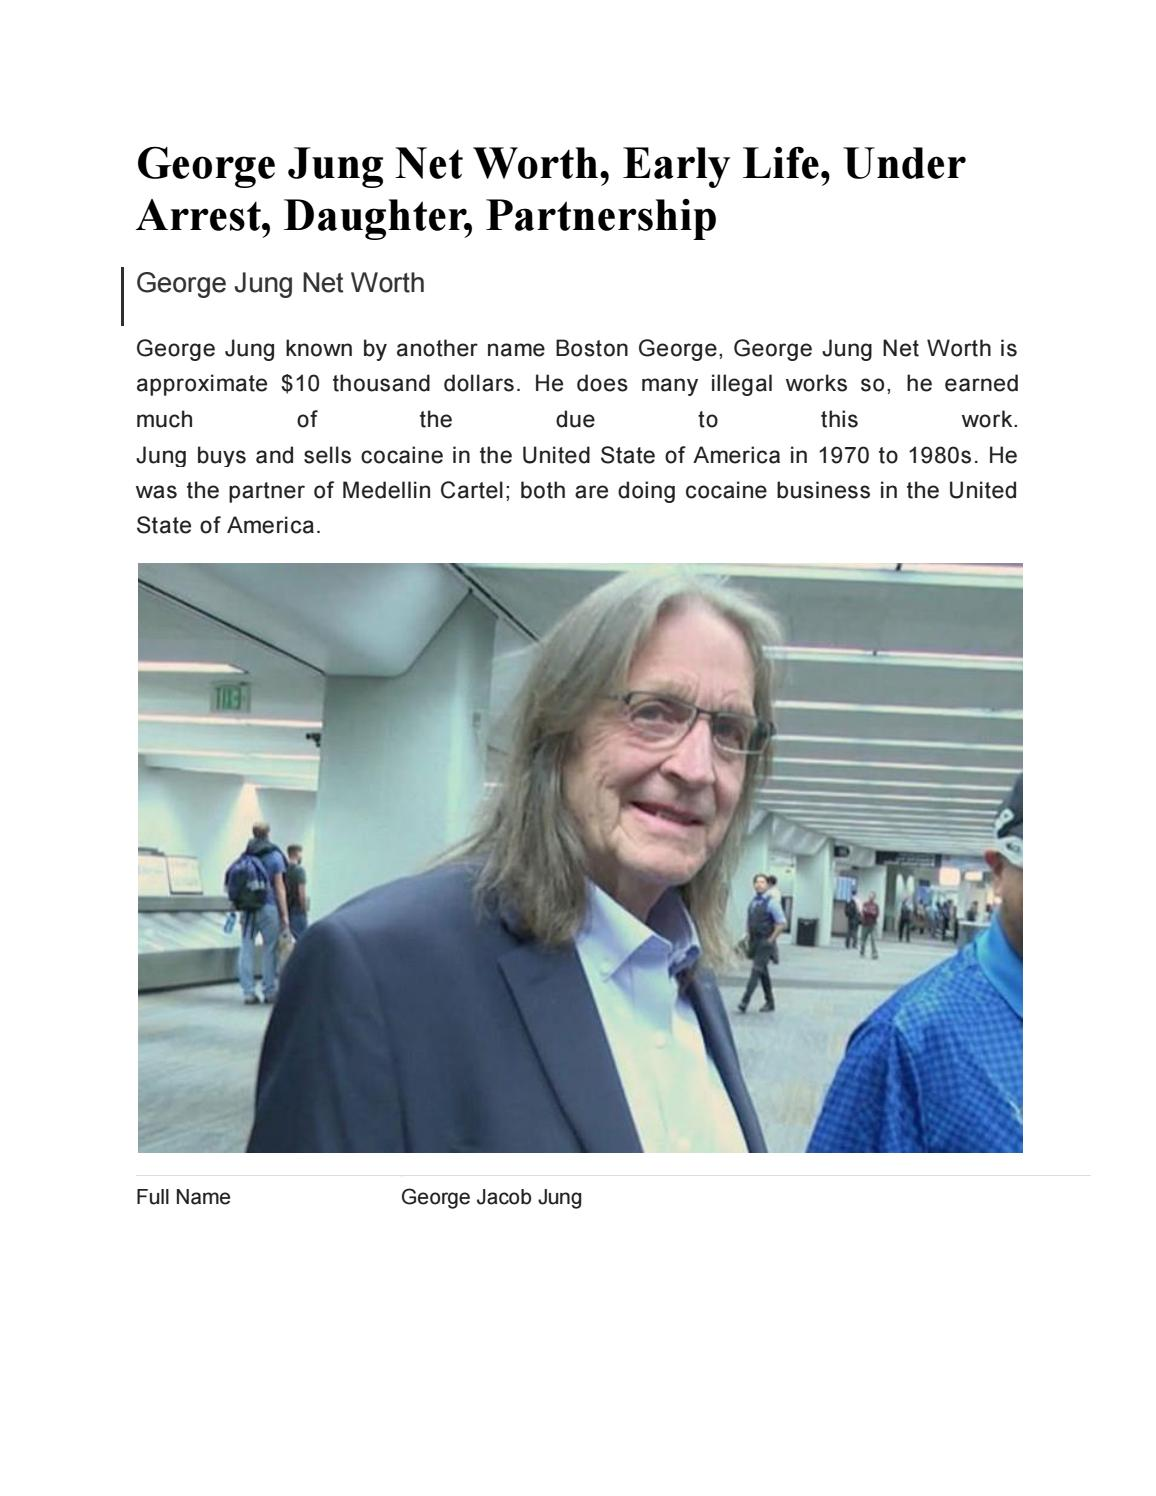 George Jung Net Worth, Early Life, Under Arrest, Daughter